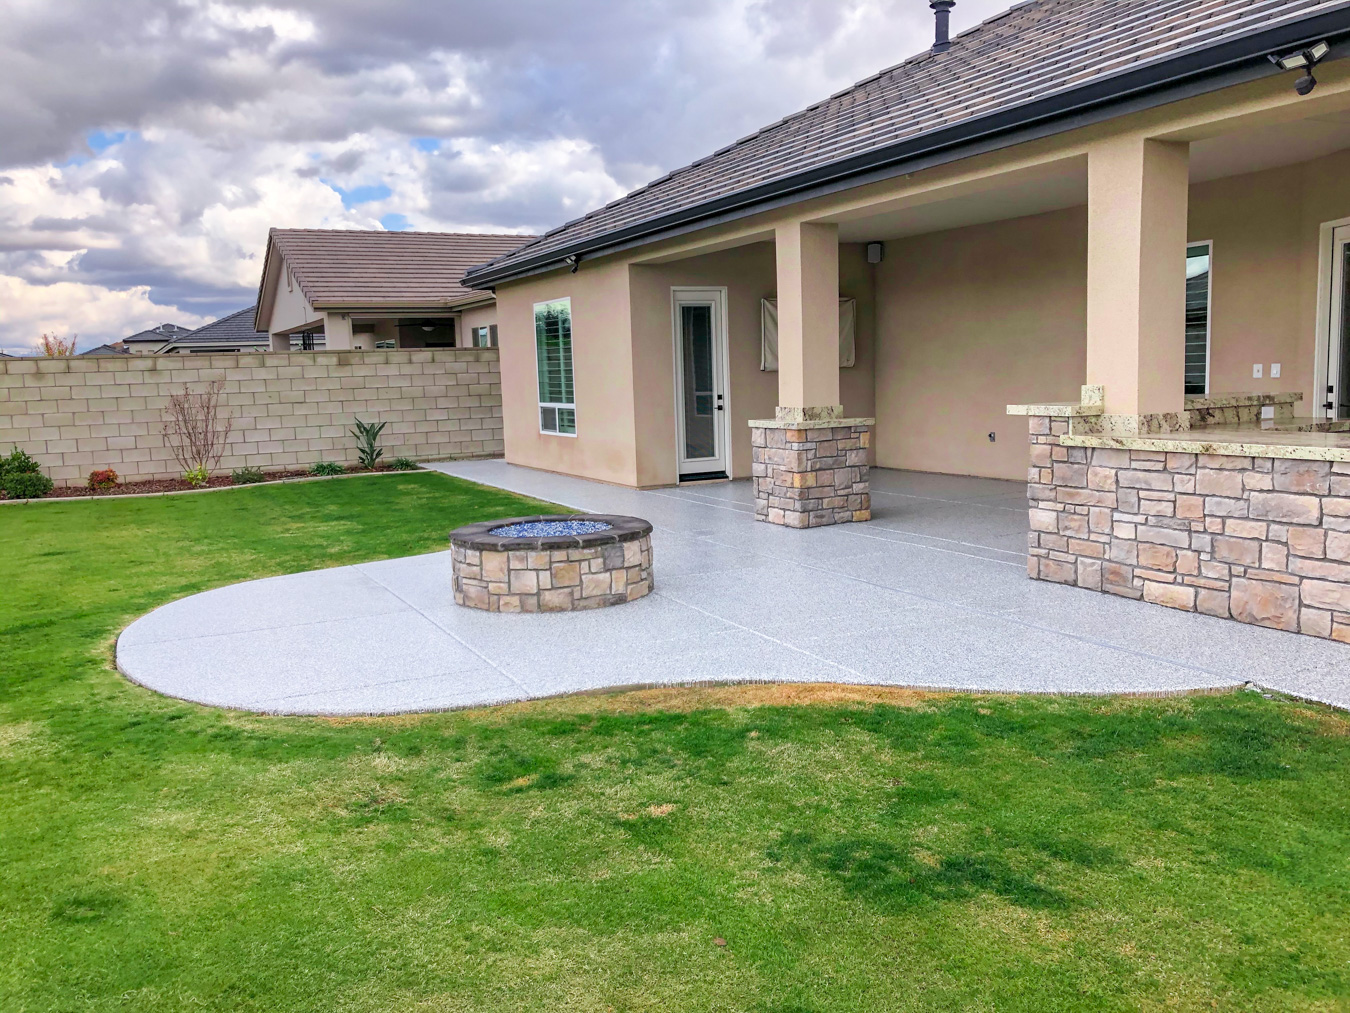 Concrete Flooring on a Patio and around fire pit